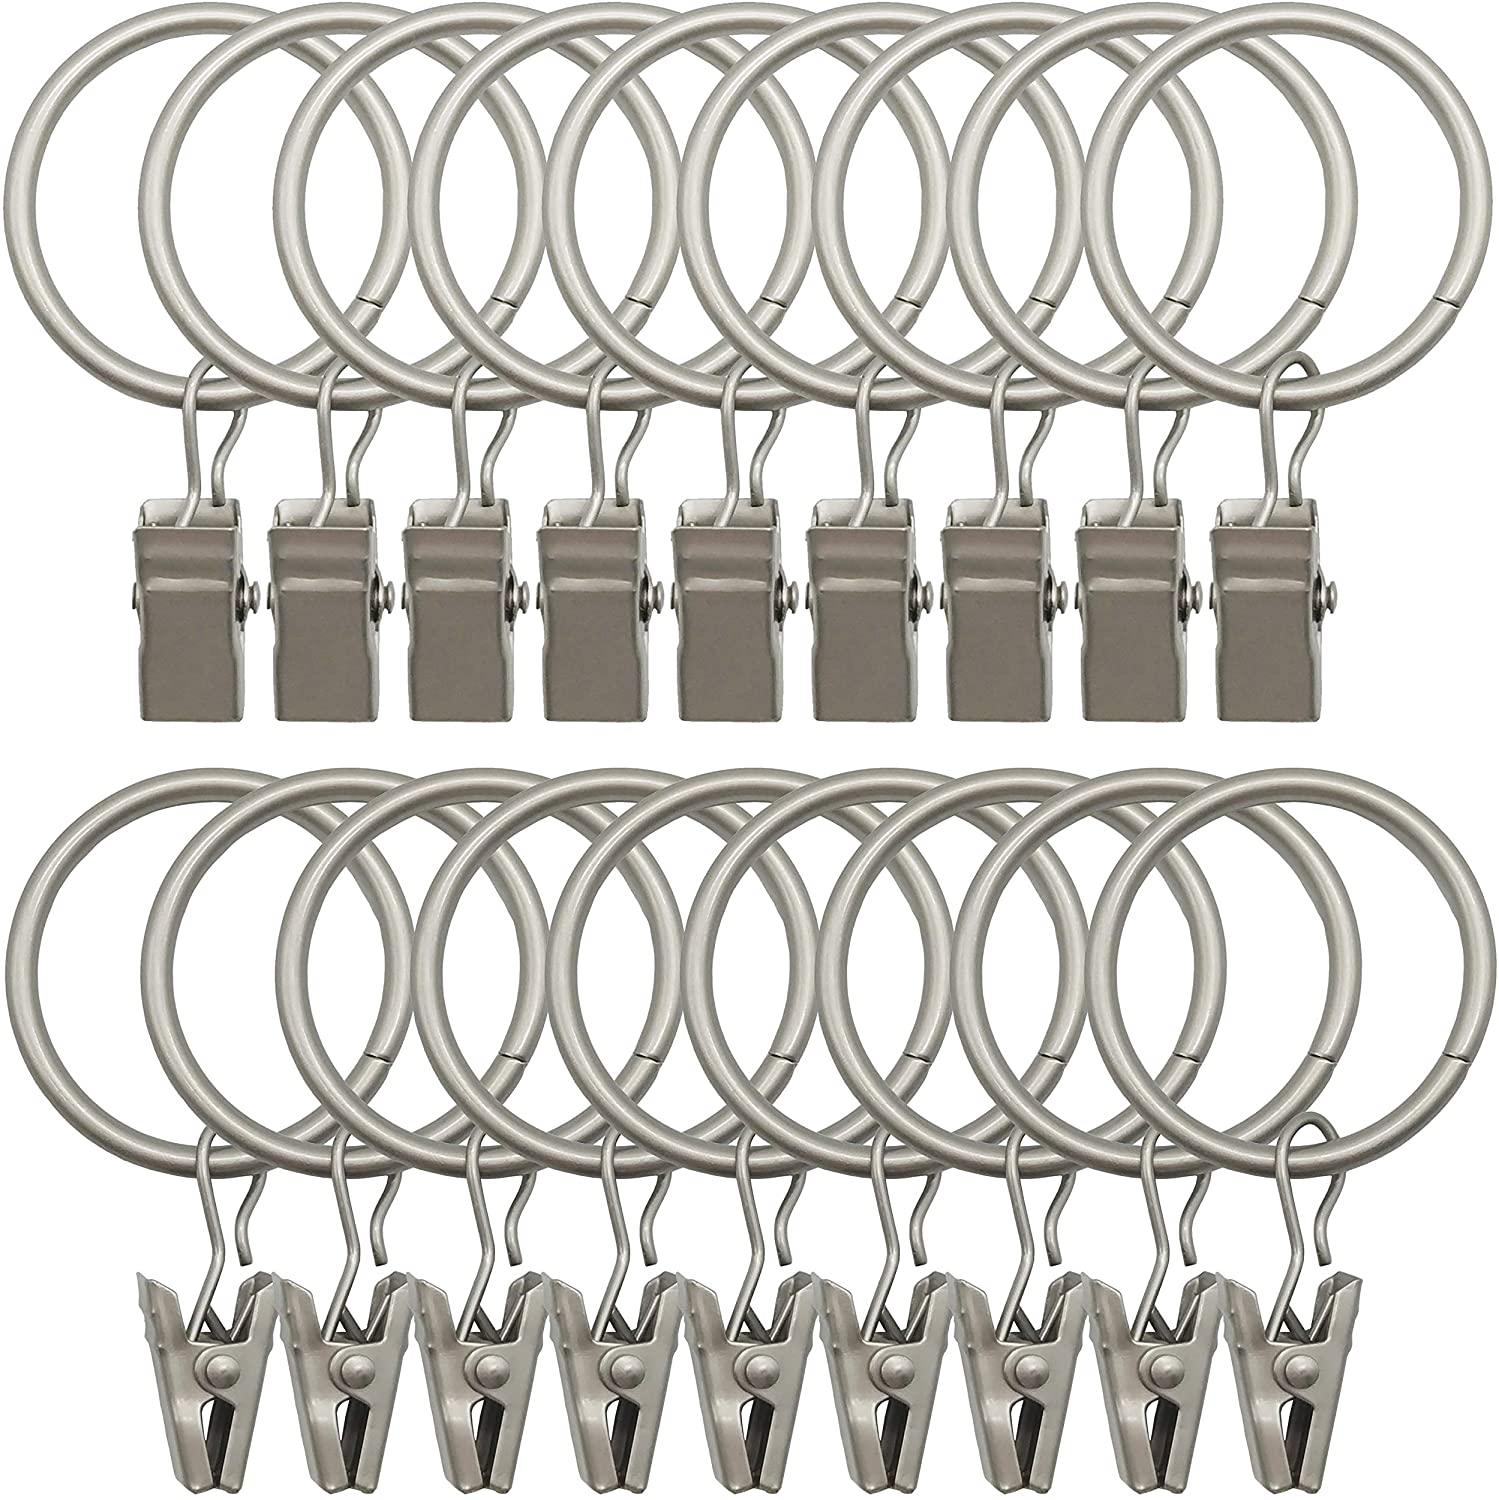 42 Pack Curtain Rings with Clips Decorative Drapery Rustproof Vintage Interior